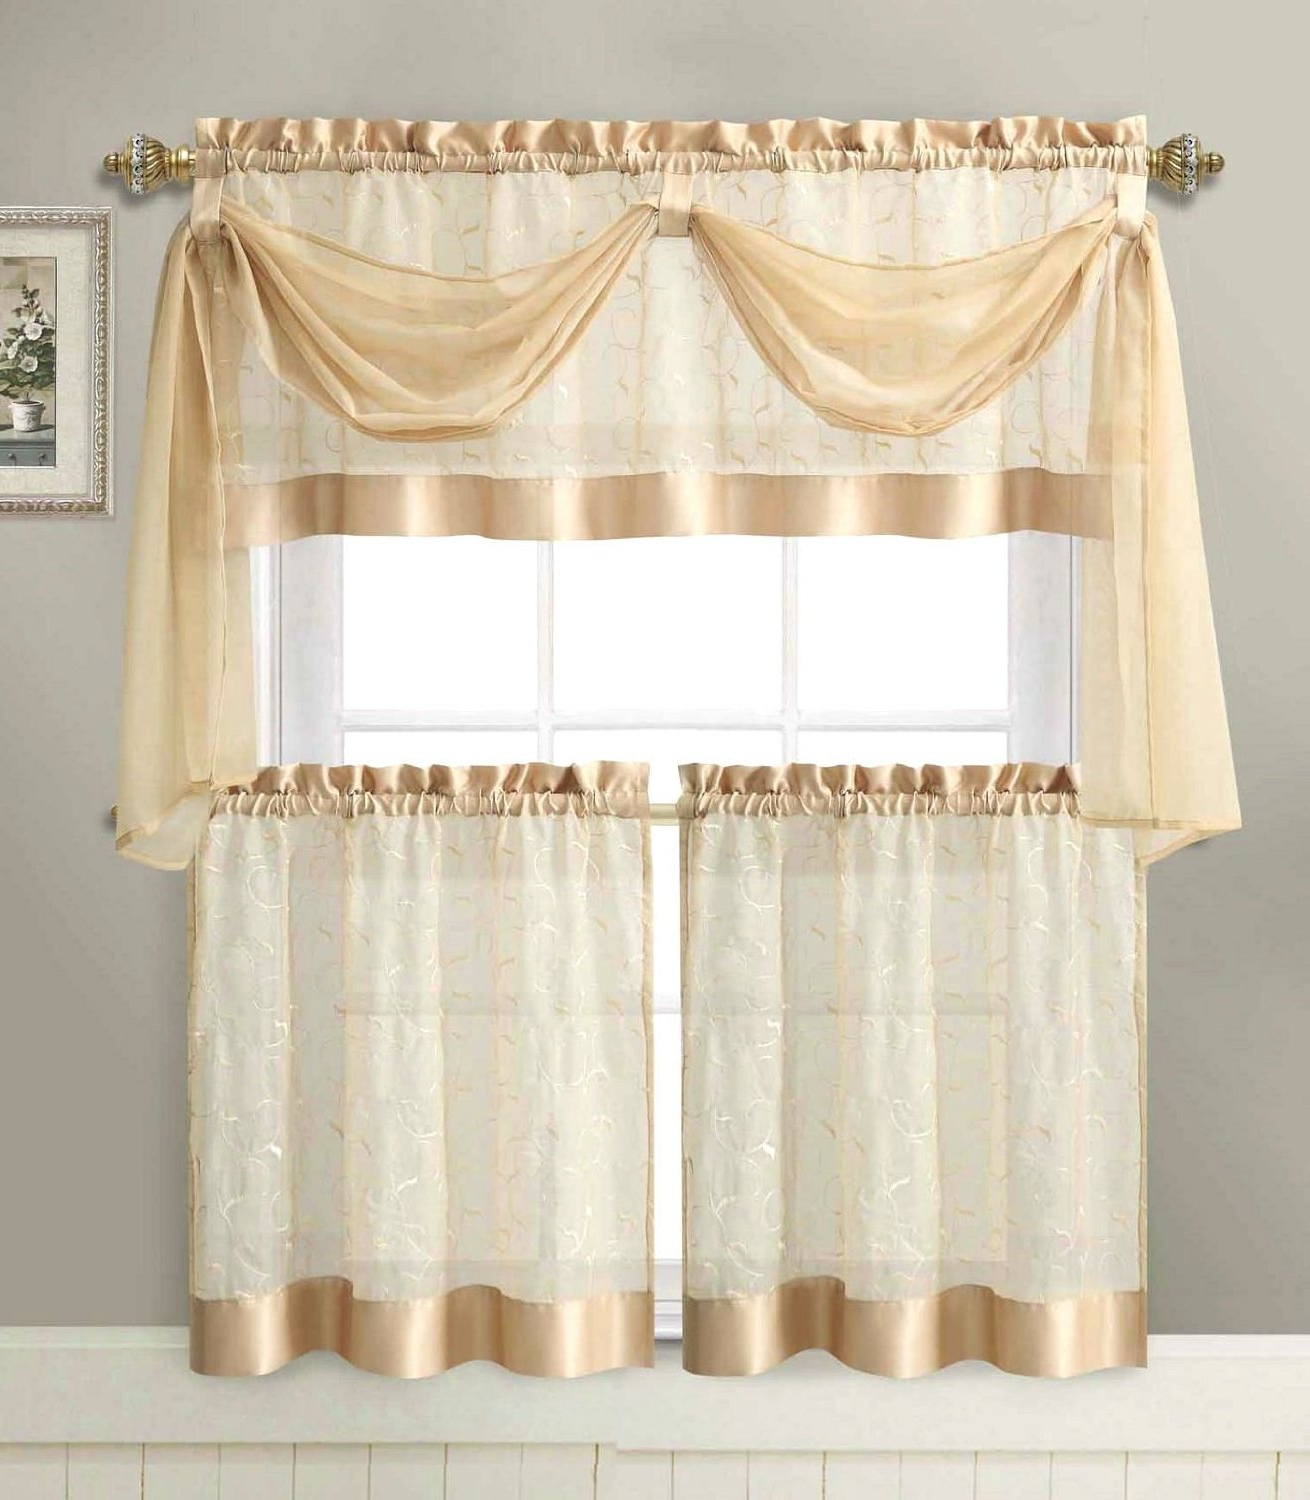 Embroidered 'coffee Cup' 5 Piece Kitchen Curtain Sets Inside Best And Newest Linen Leaf 4 Pc. Tier & Valance Kitchen Curtain Set – Gold (Gallery 12 of 20)